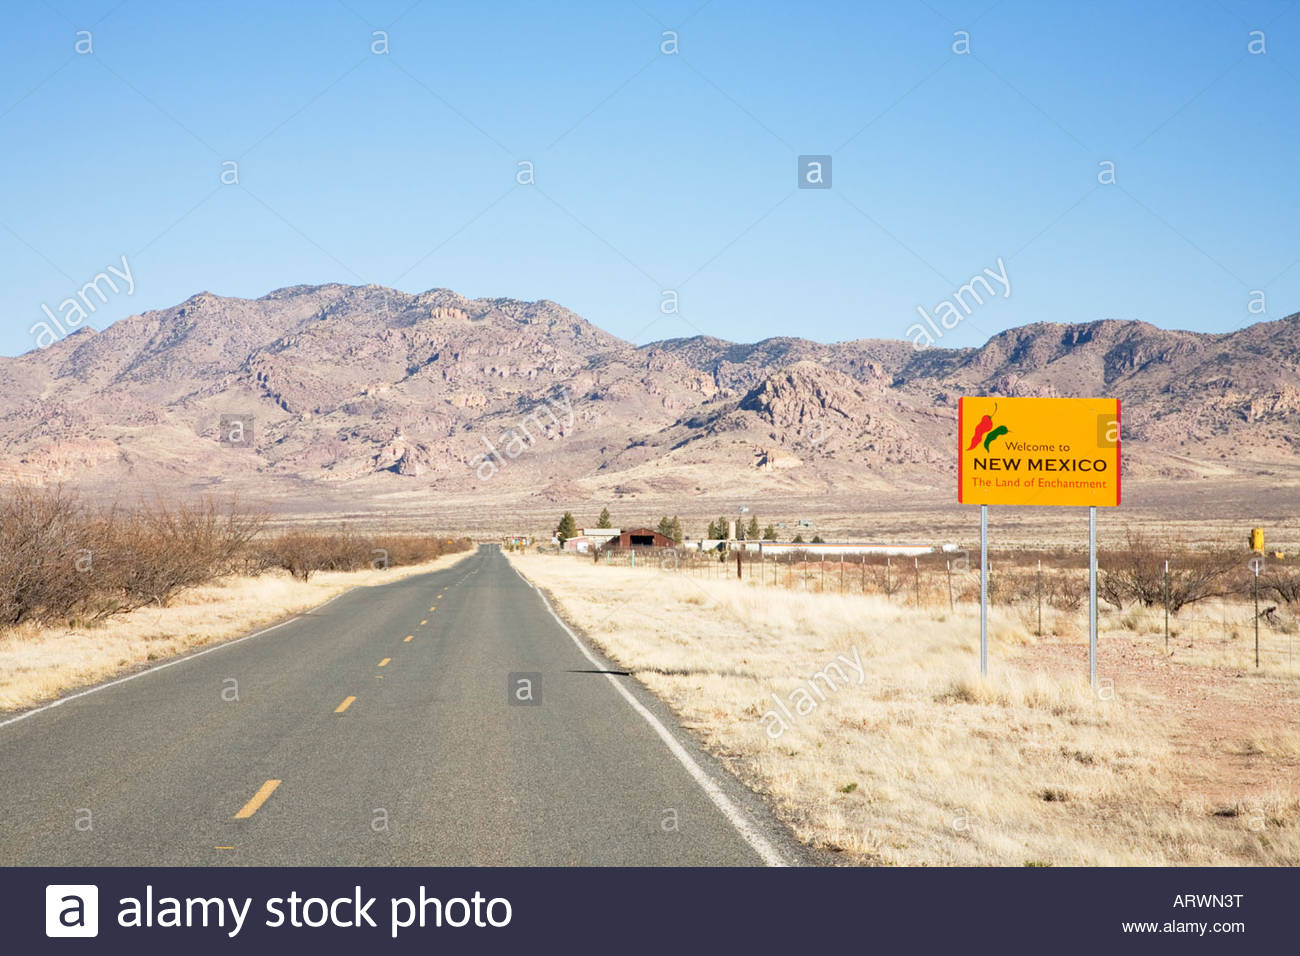 Highway sign Welcome to New Mexico Portal Road Hidalgo County Chili peppers Stock Photo